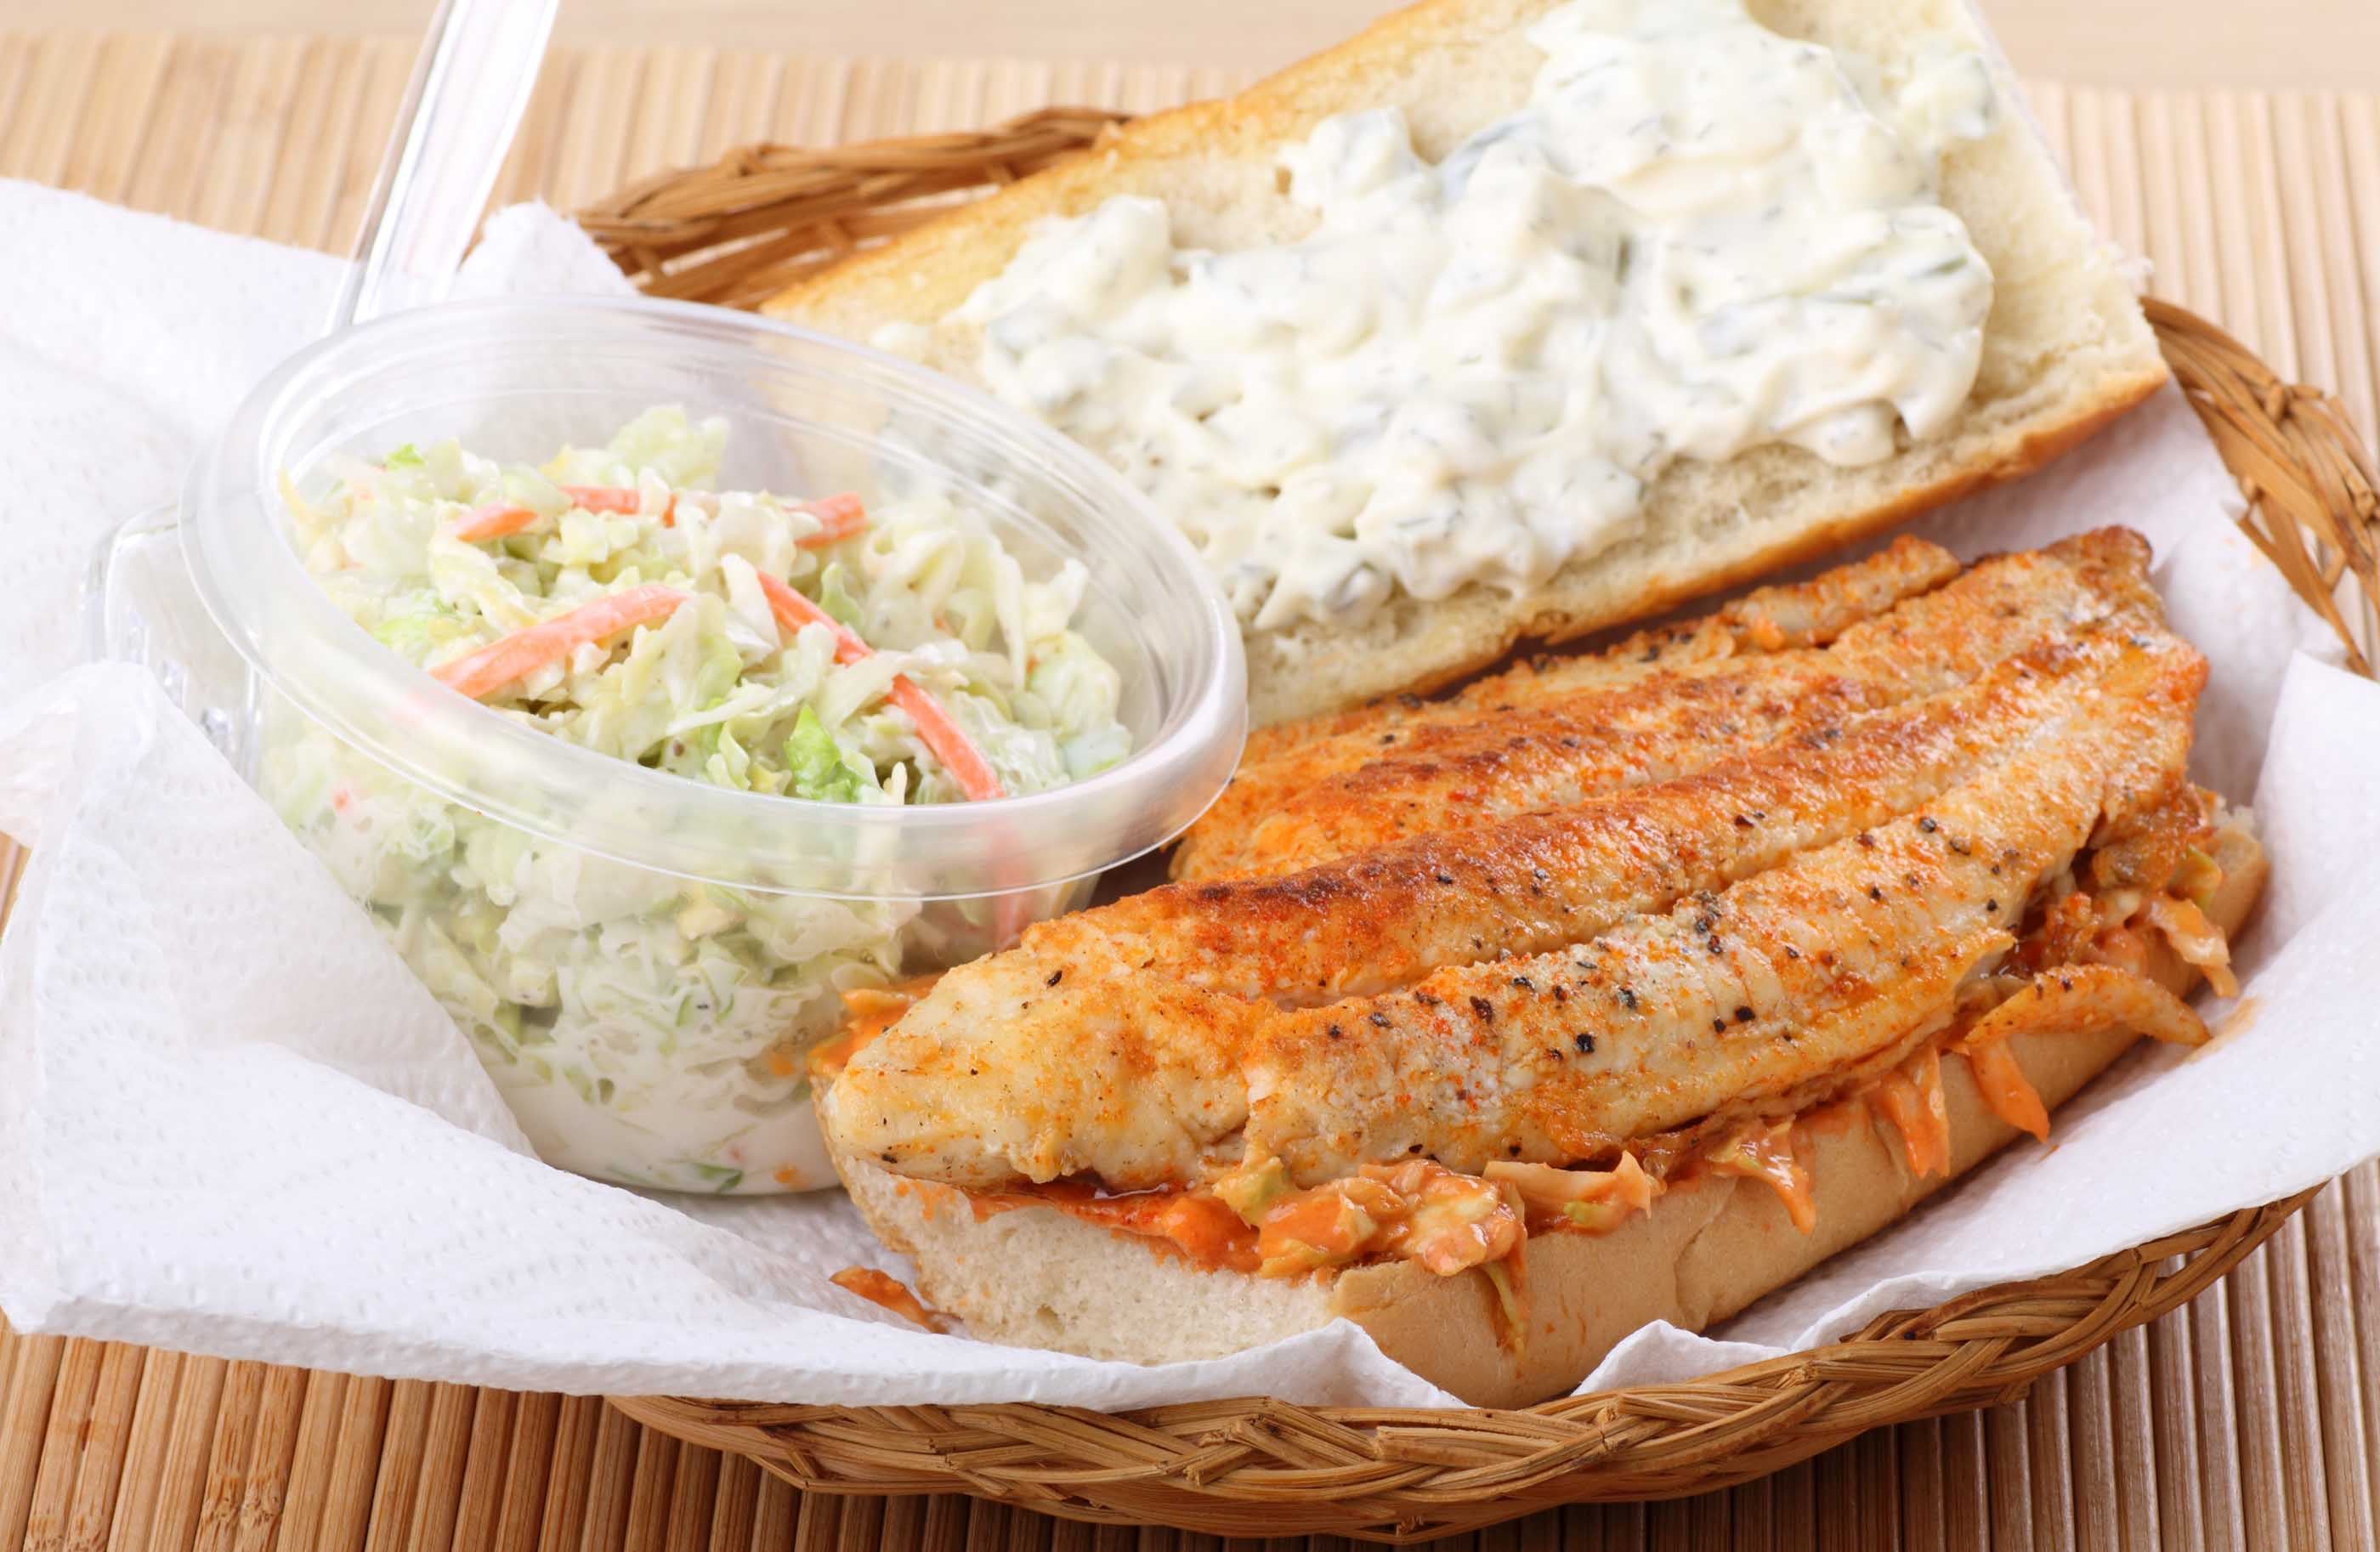 Fish sandwich with coleslaw